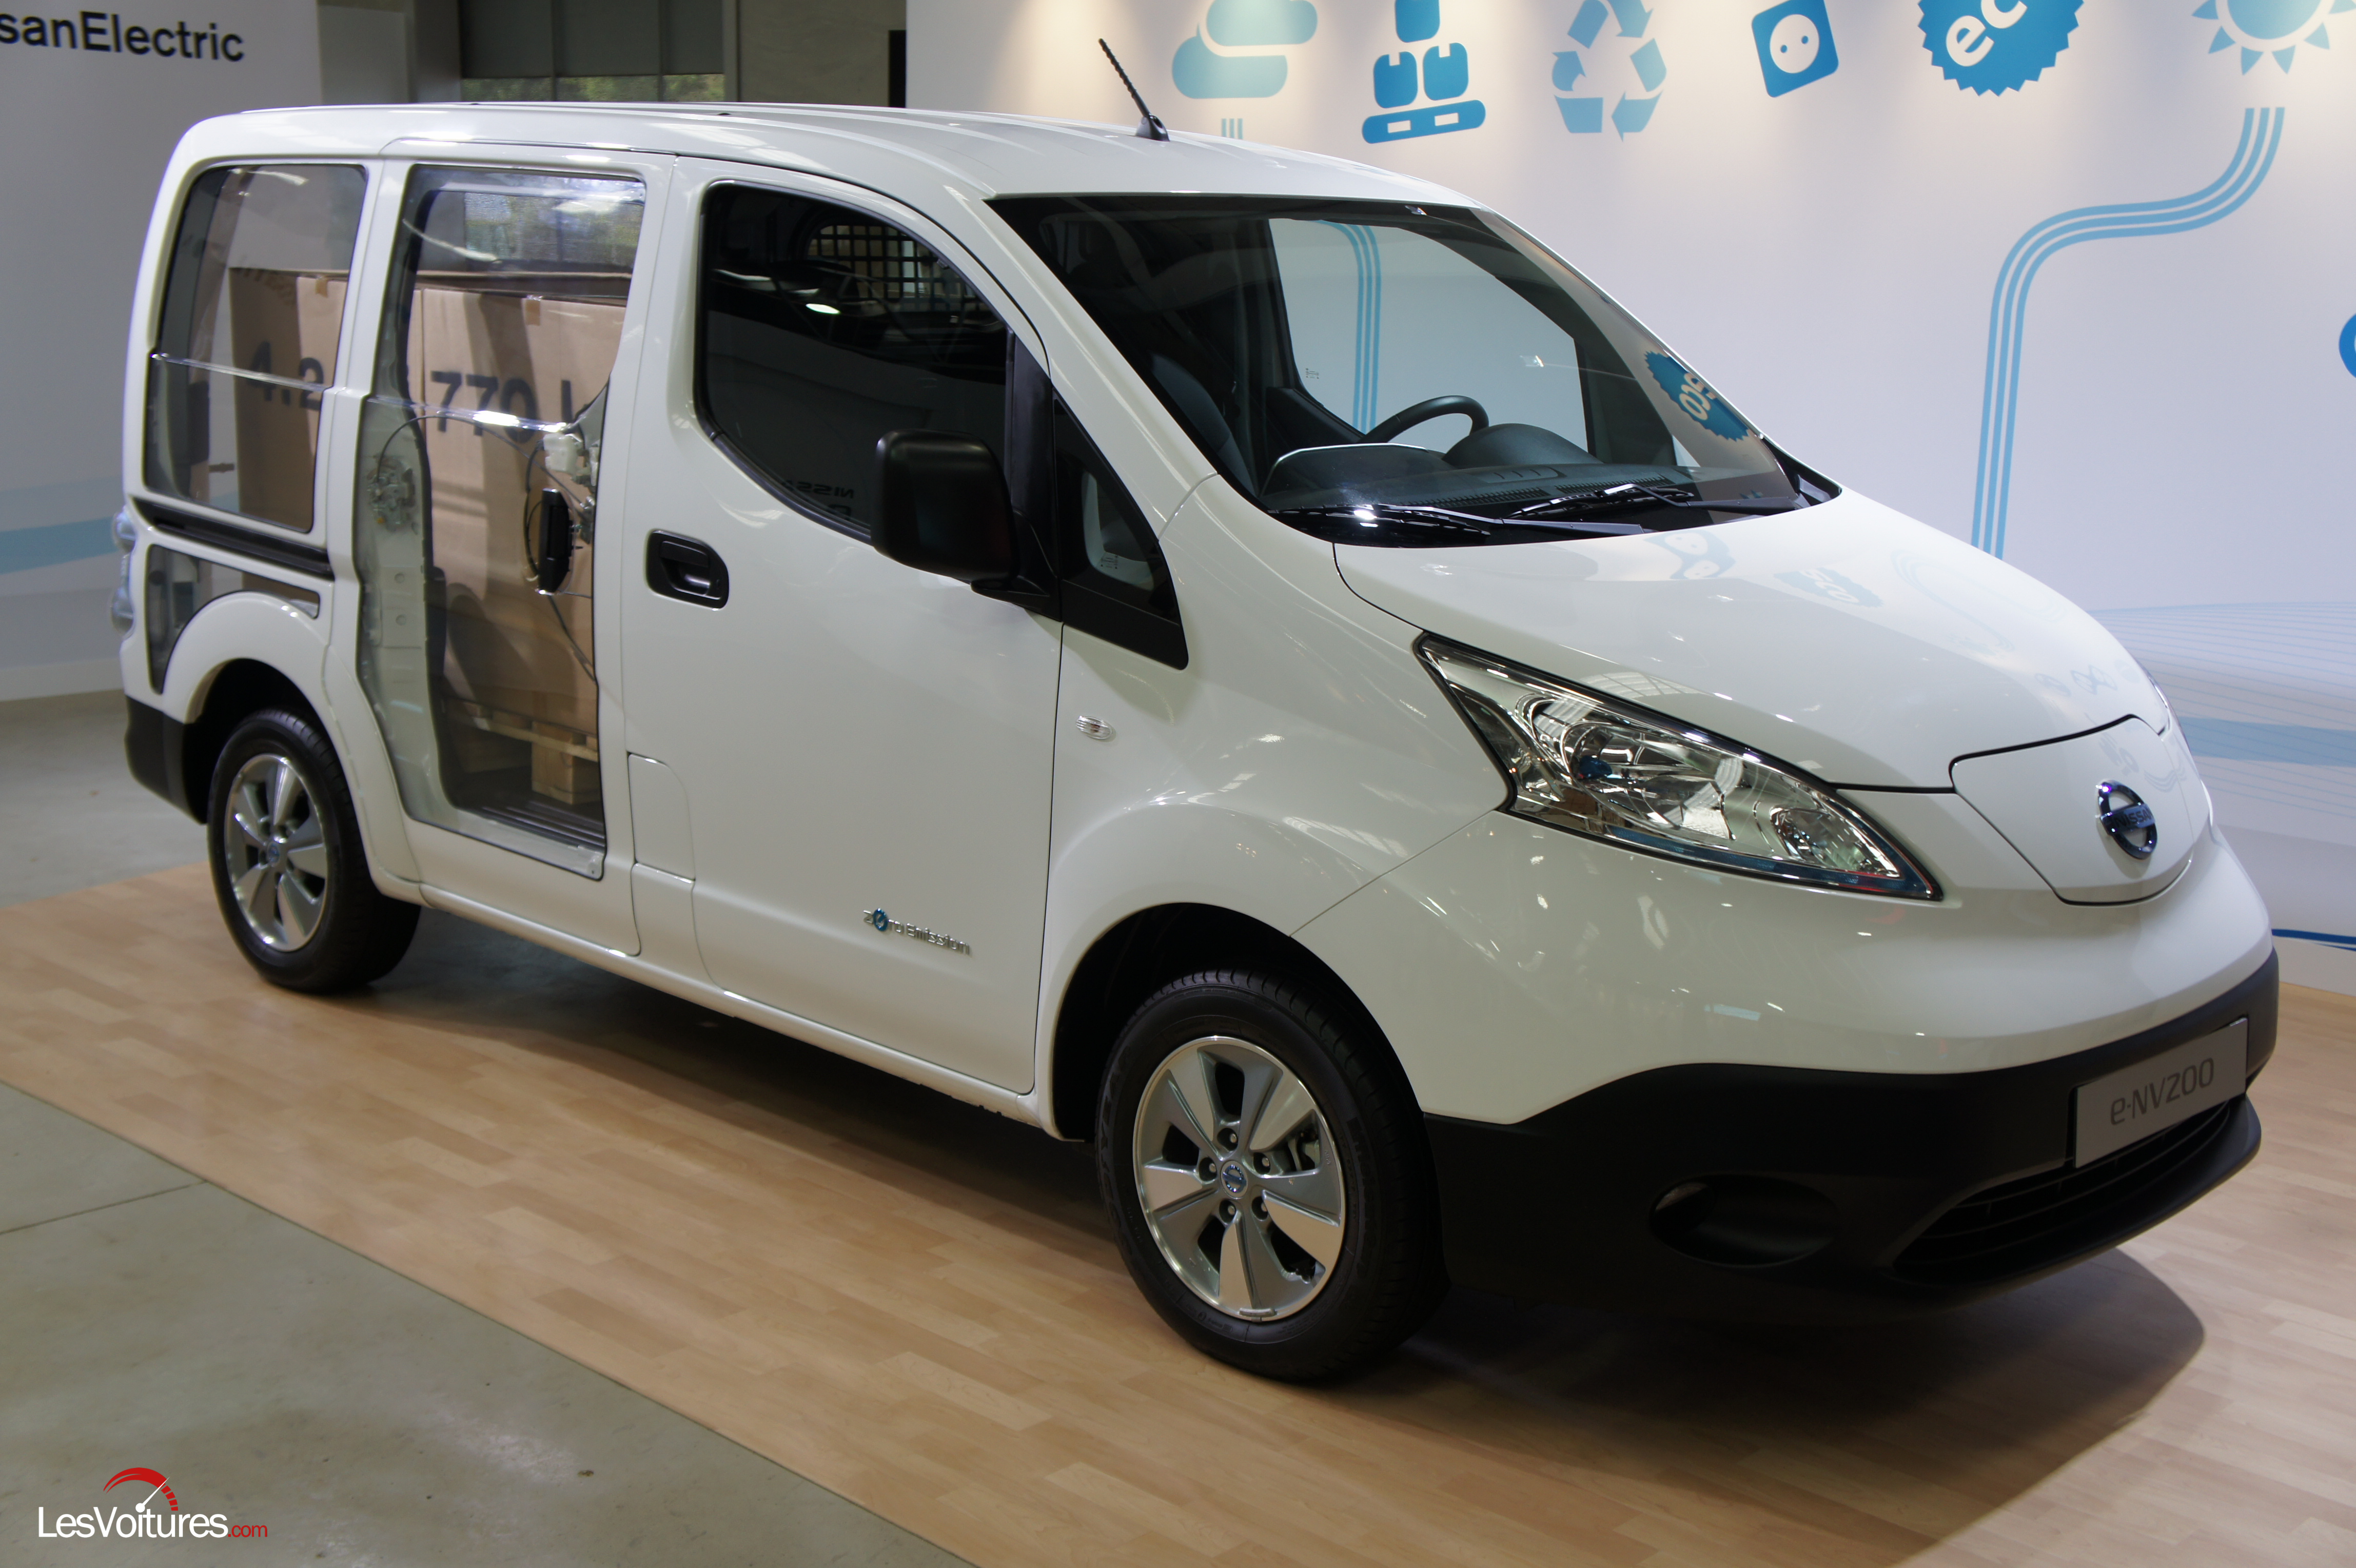 nissan e nv200 evalia essai fourgon ludospace les voitures. Black Bedroom Furniture Sets. Home Design Ideas